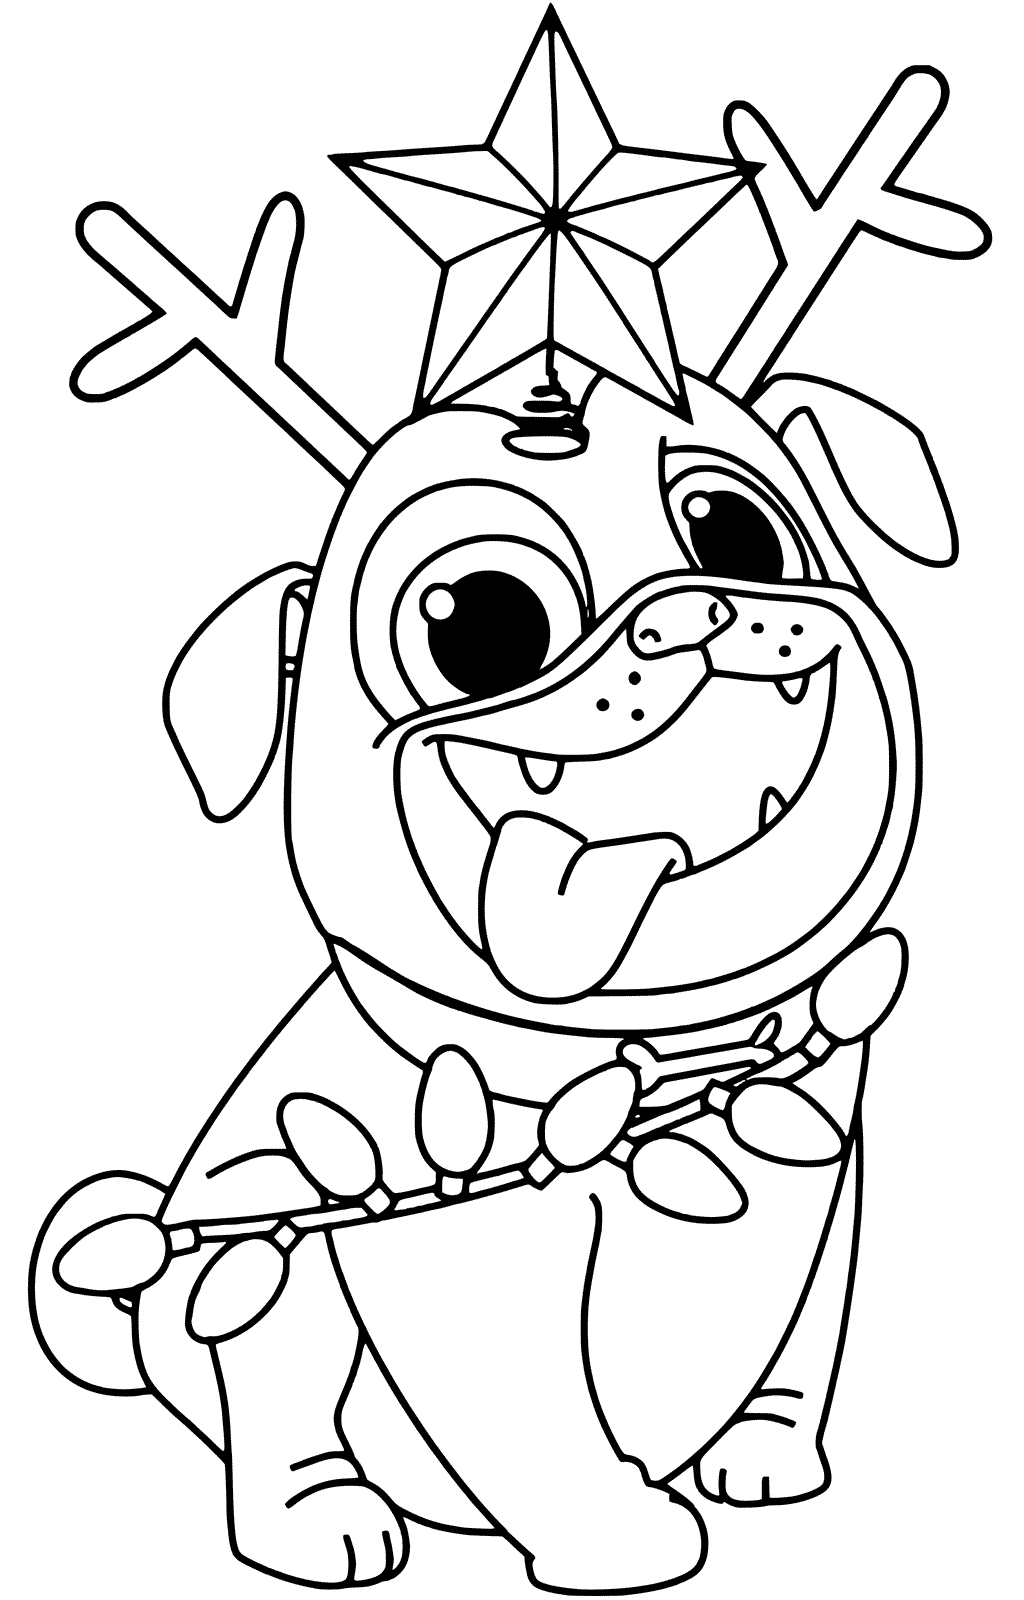 coloring puppy dog pals puppy dog pals coloring pages to download and print for free puppy coloring dog pals